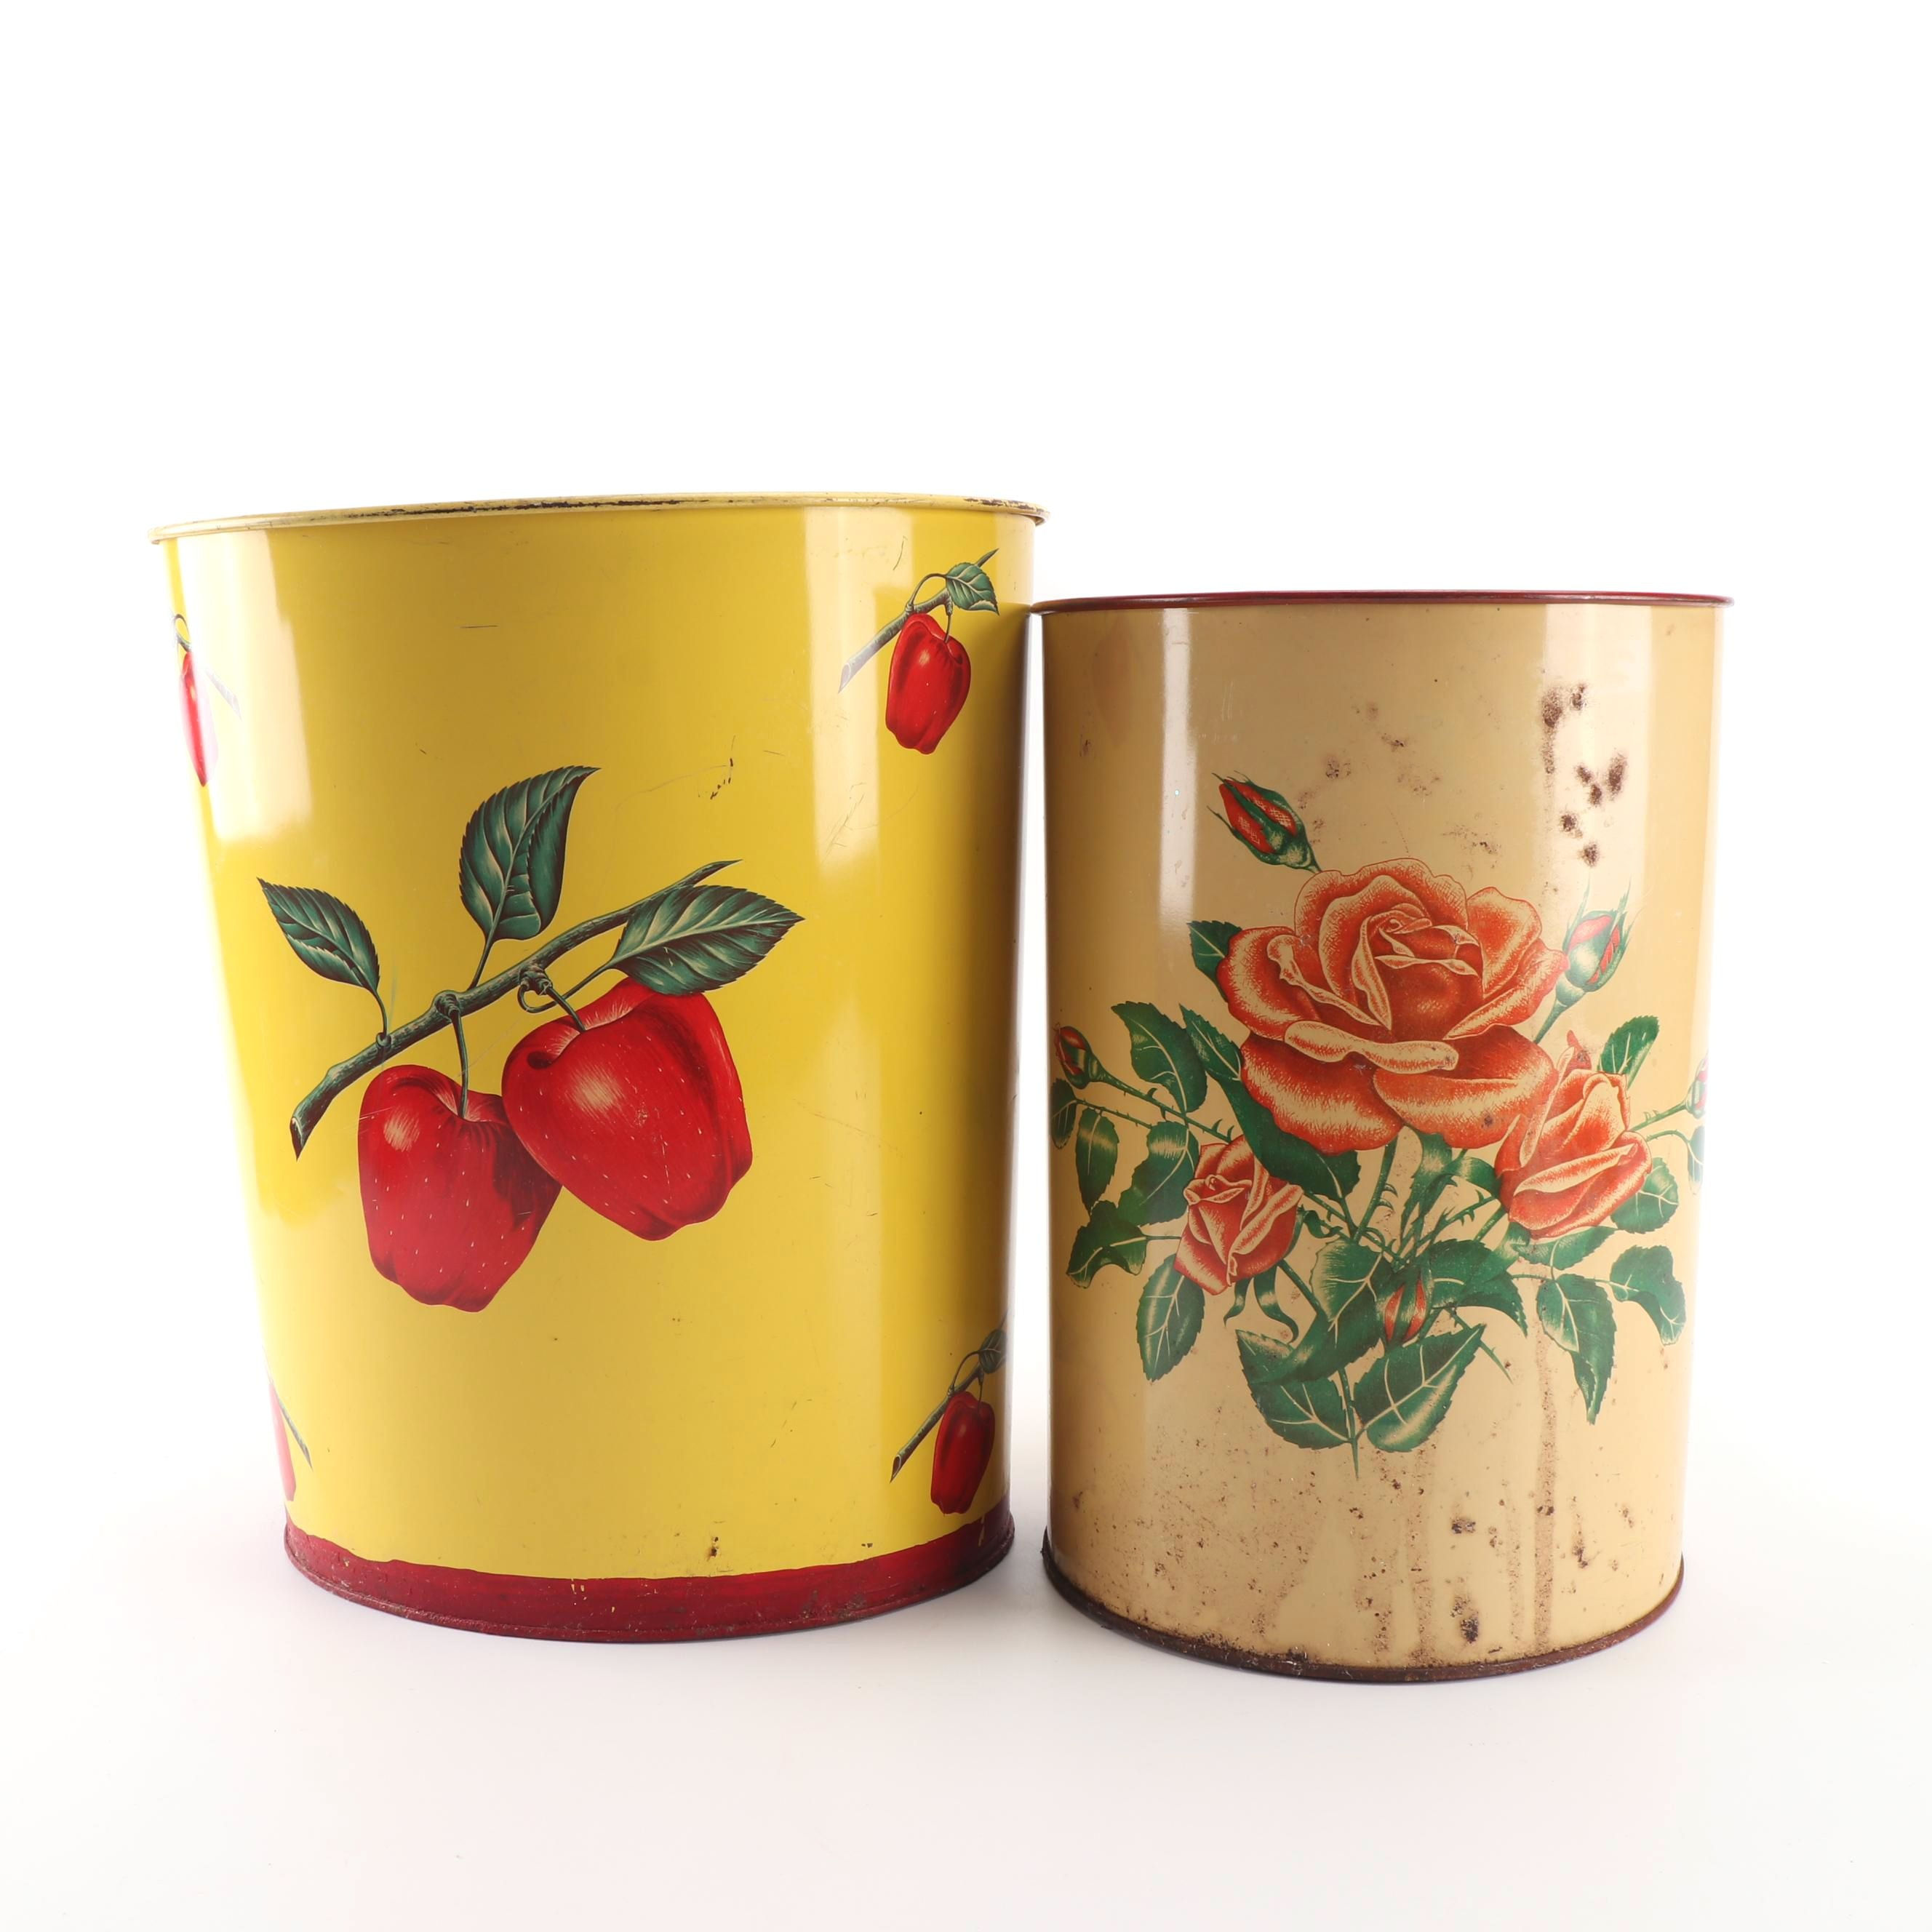 Floral Painted Tin Waste Baskets including Decoware, Mid-20th Century